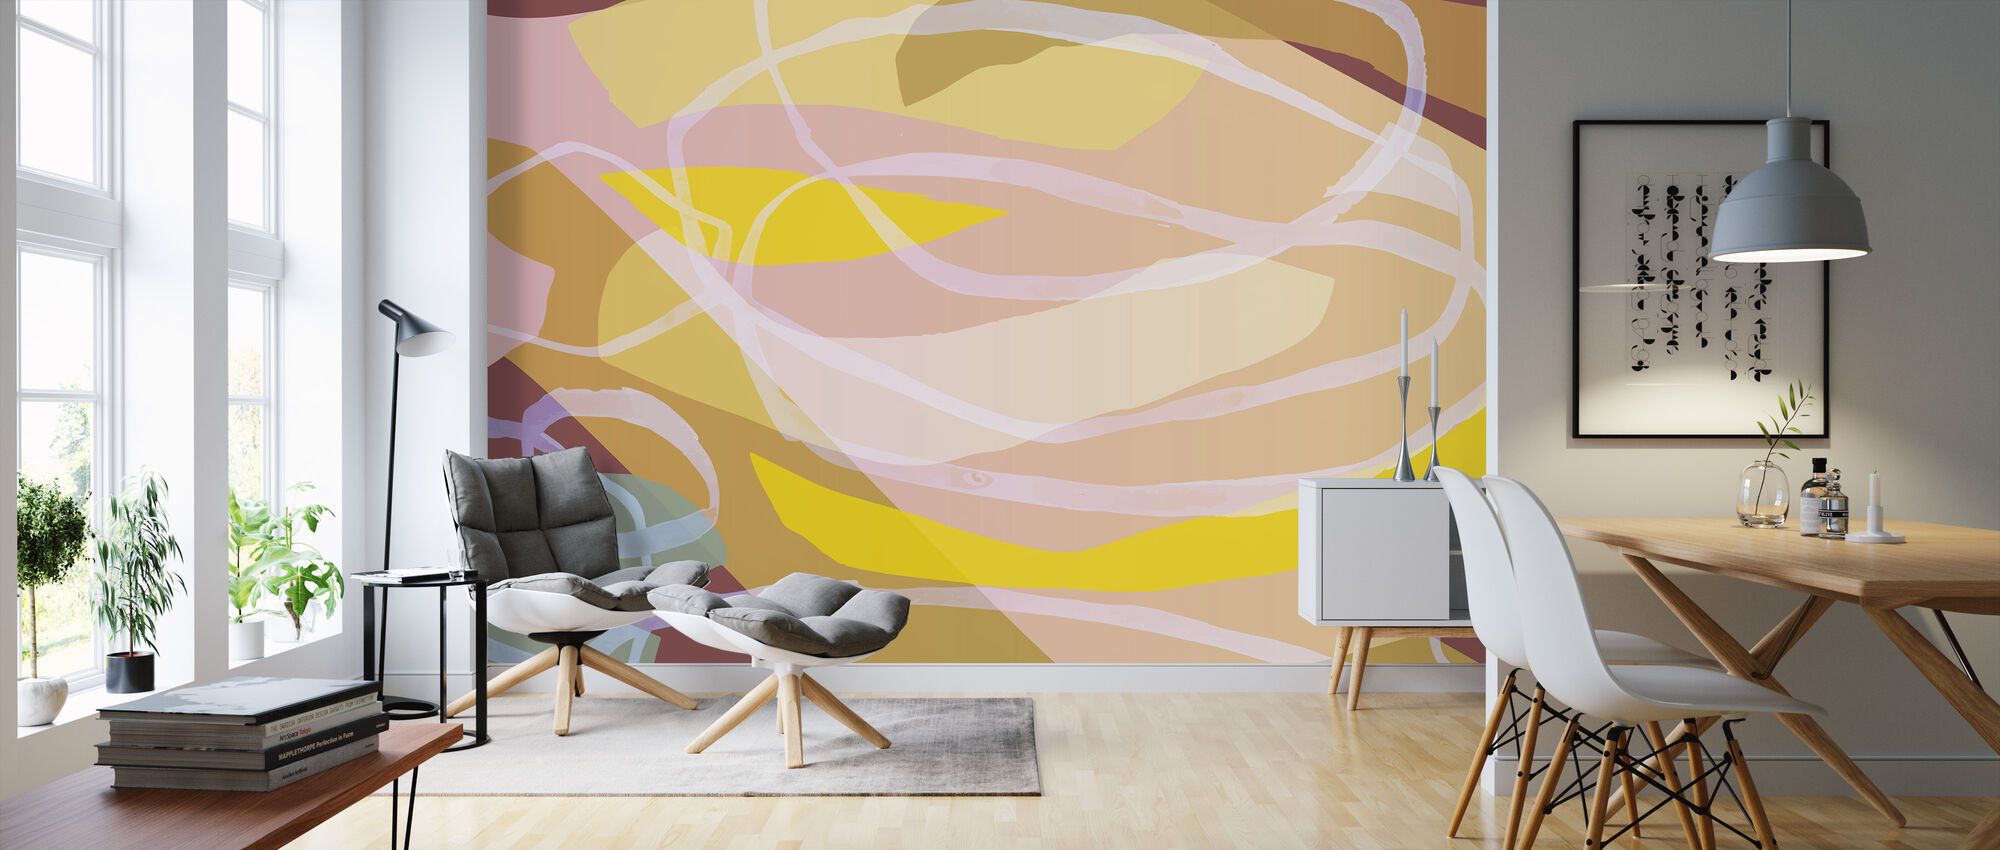 Hurricane Colette - Wallpaper - Living Room